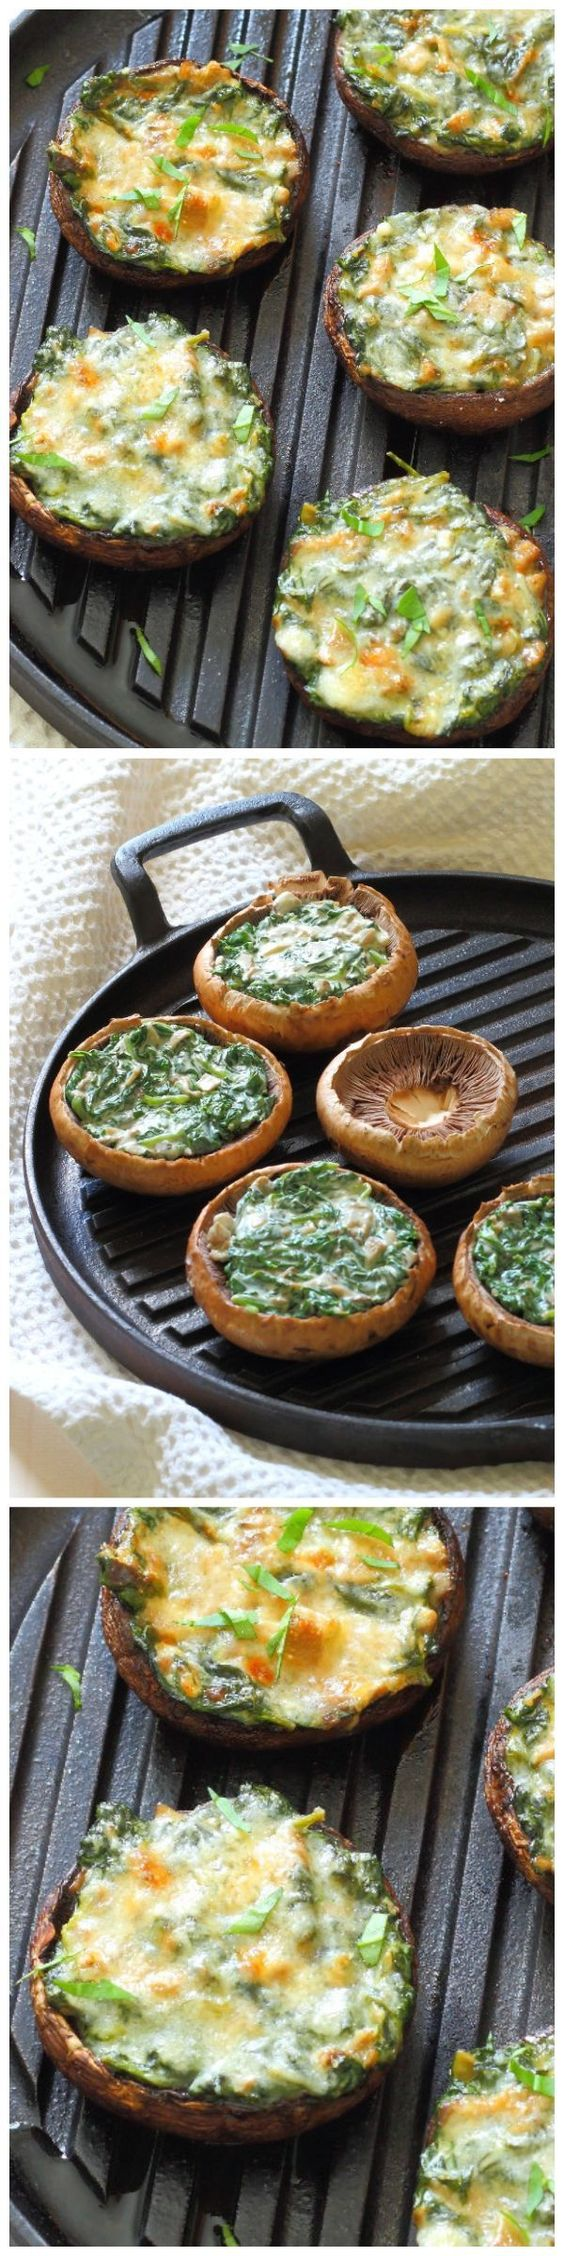 Portobello mushrooms stuffed with creamy garlic spinach, then topped with grated parmesan - the side dish for fall #healthy #fallrecipes